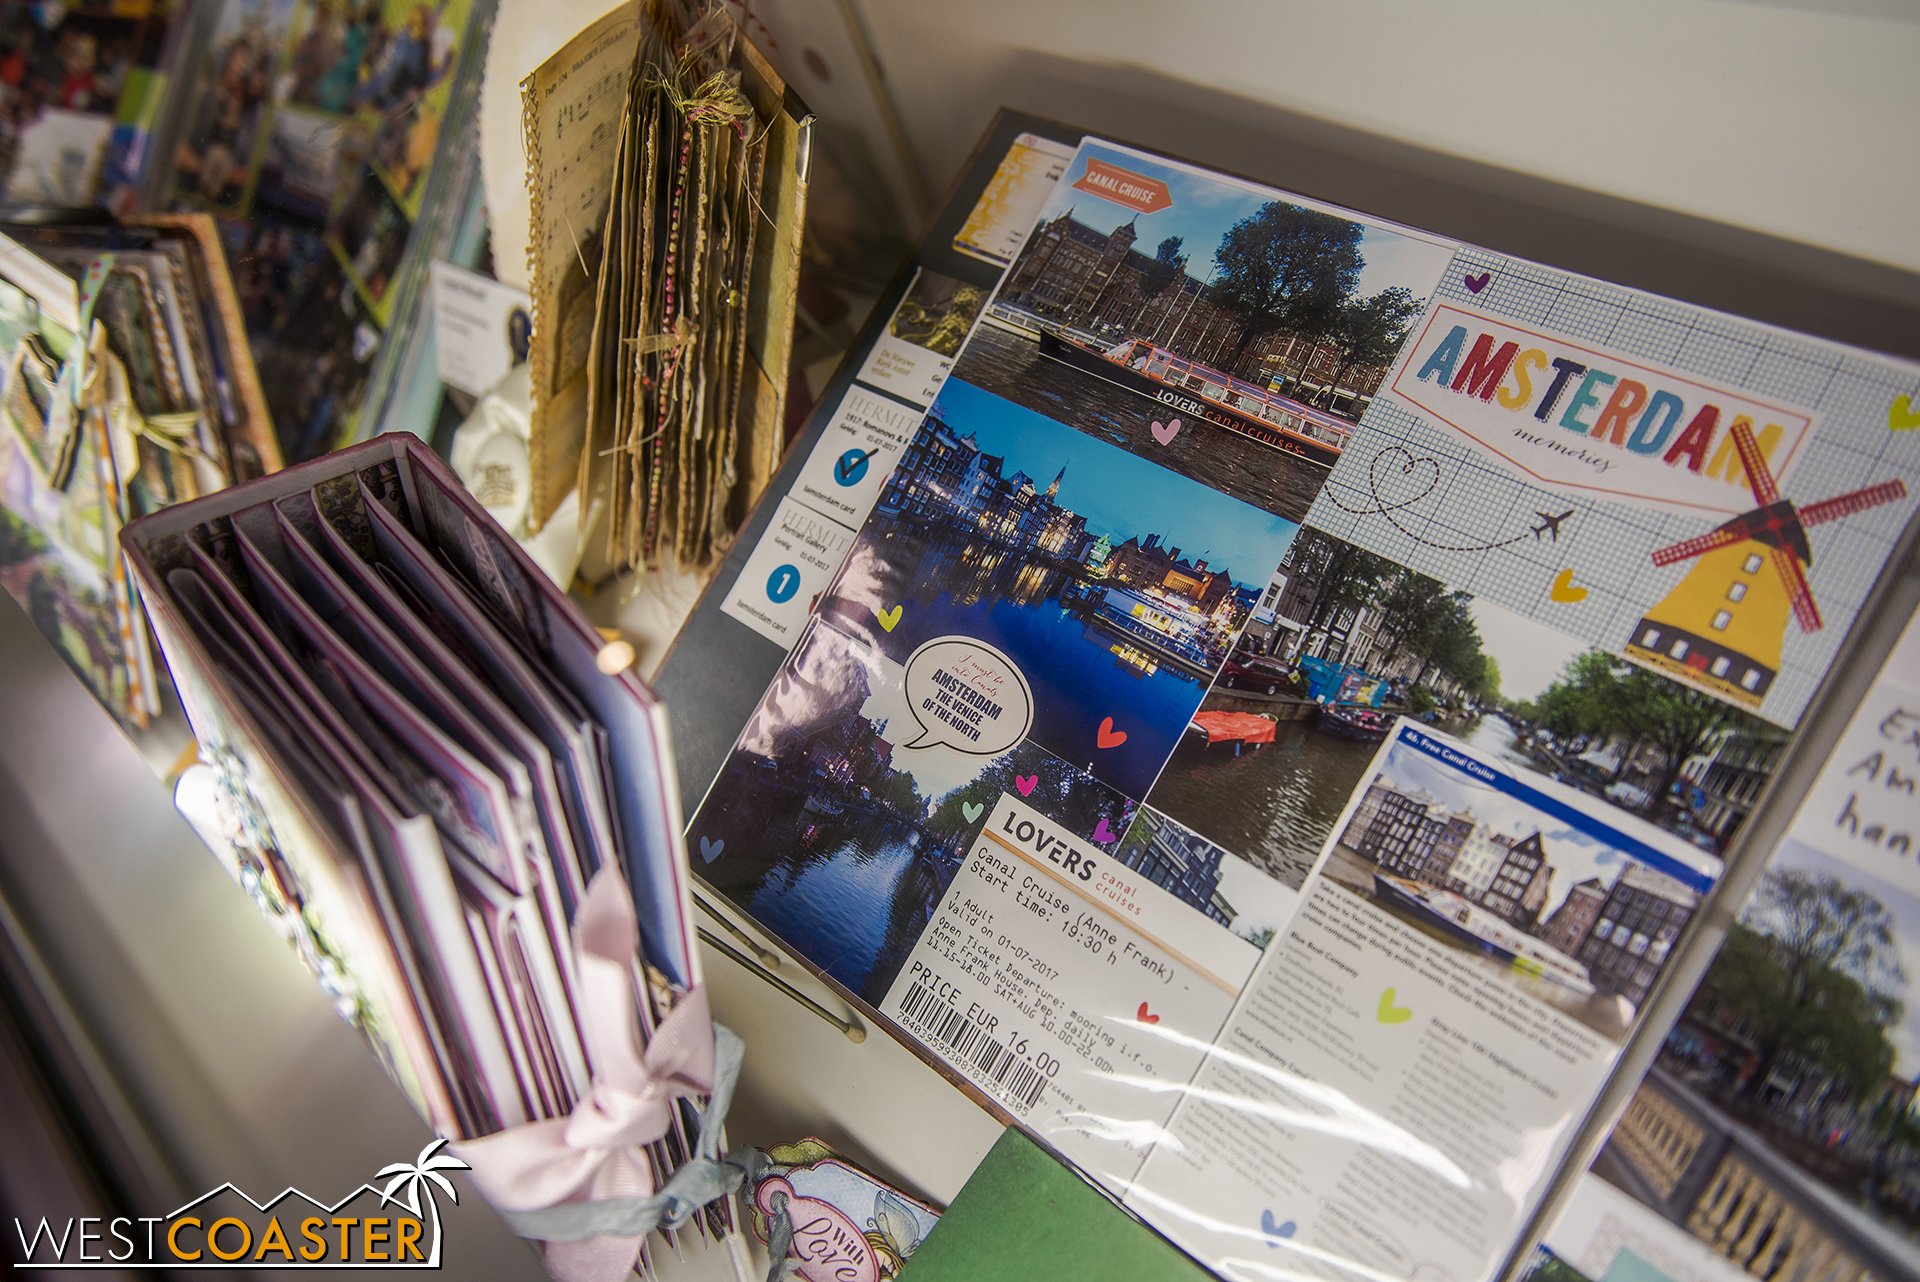 It's also home to scrapbooking and papercraft displays, submitted by contestants.